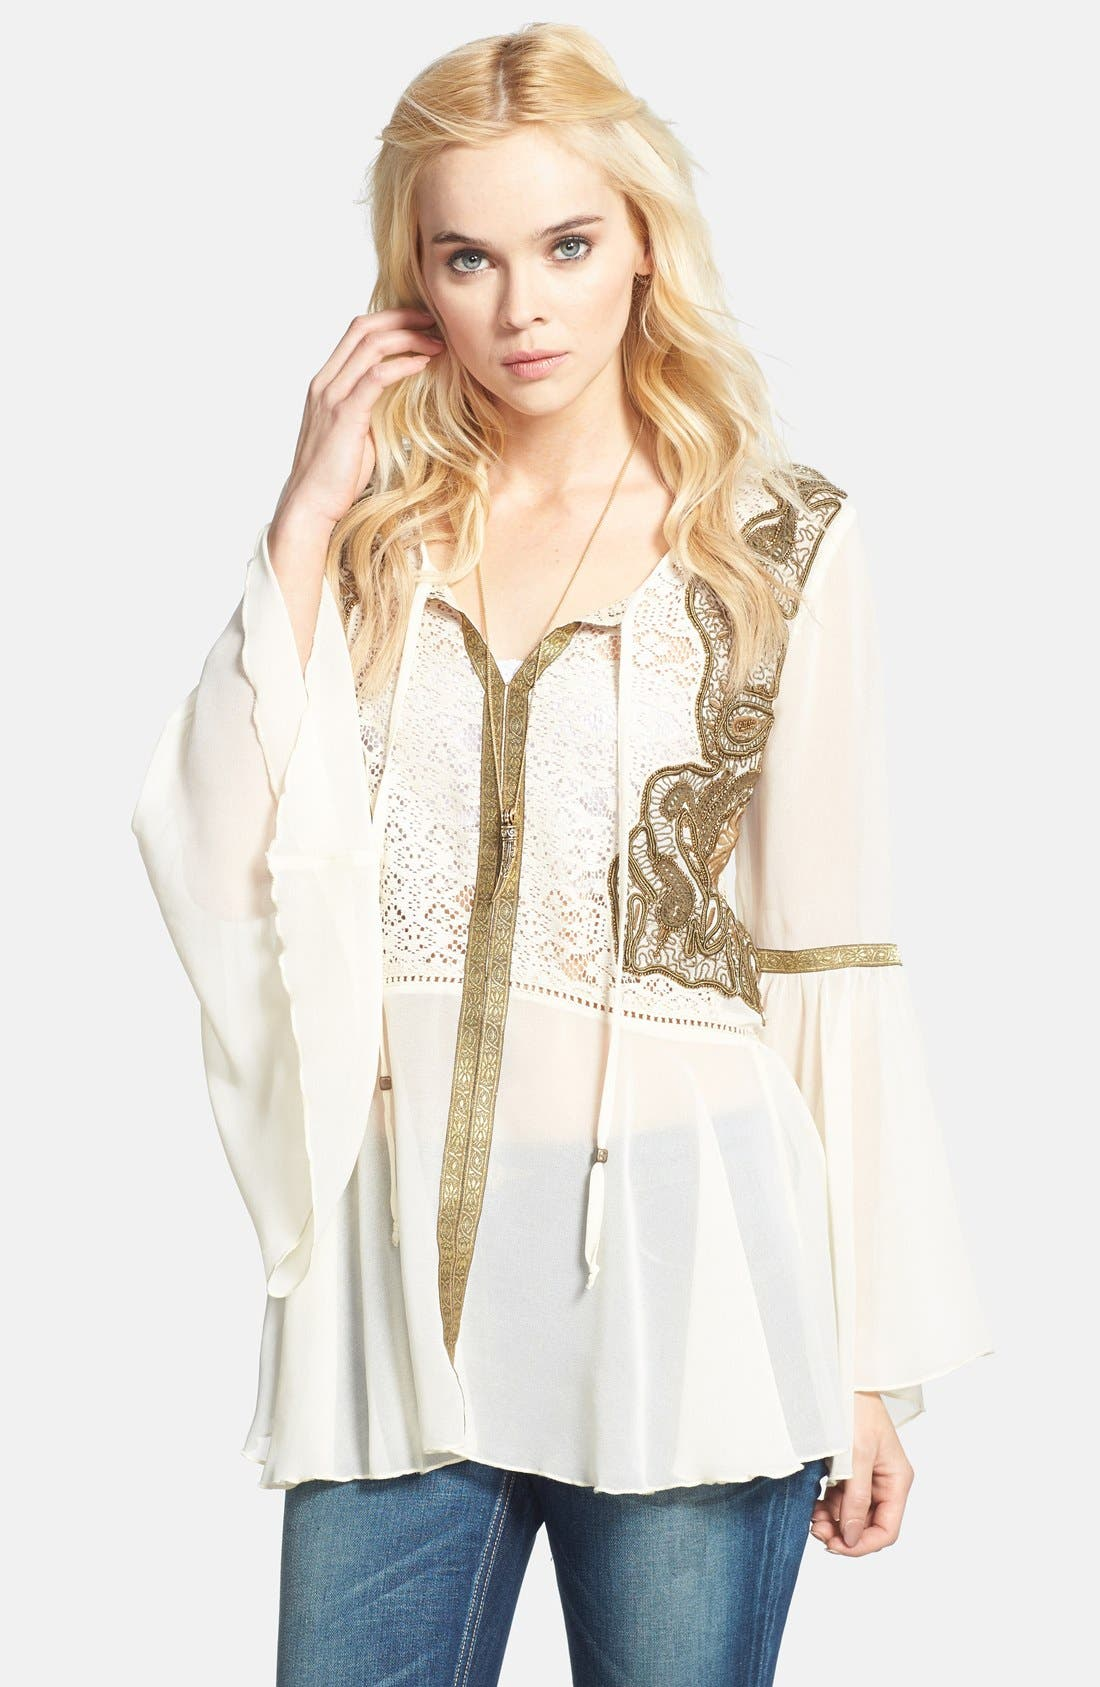 Main Image - Free People 'Golden Moments' Embroidered Lace Inset Tunic